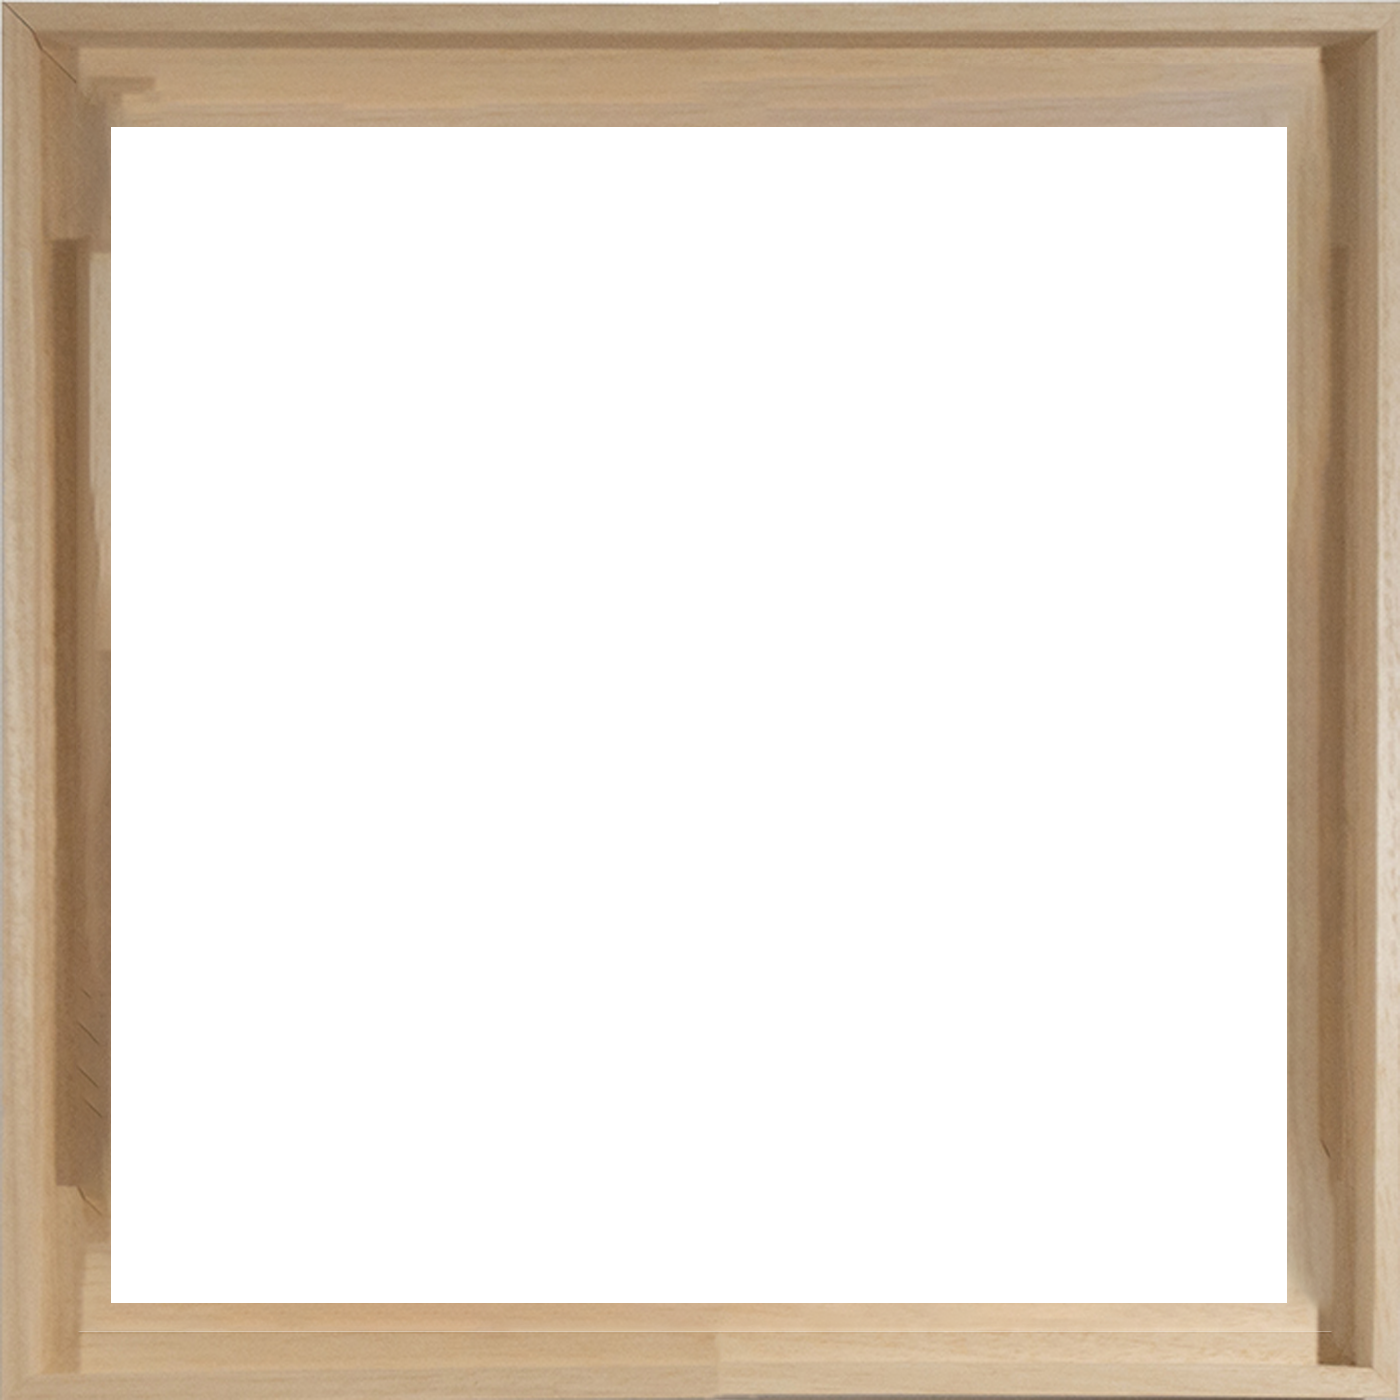 Natural wood frame